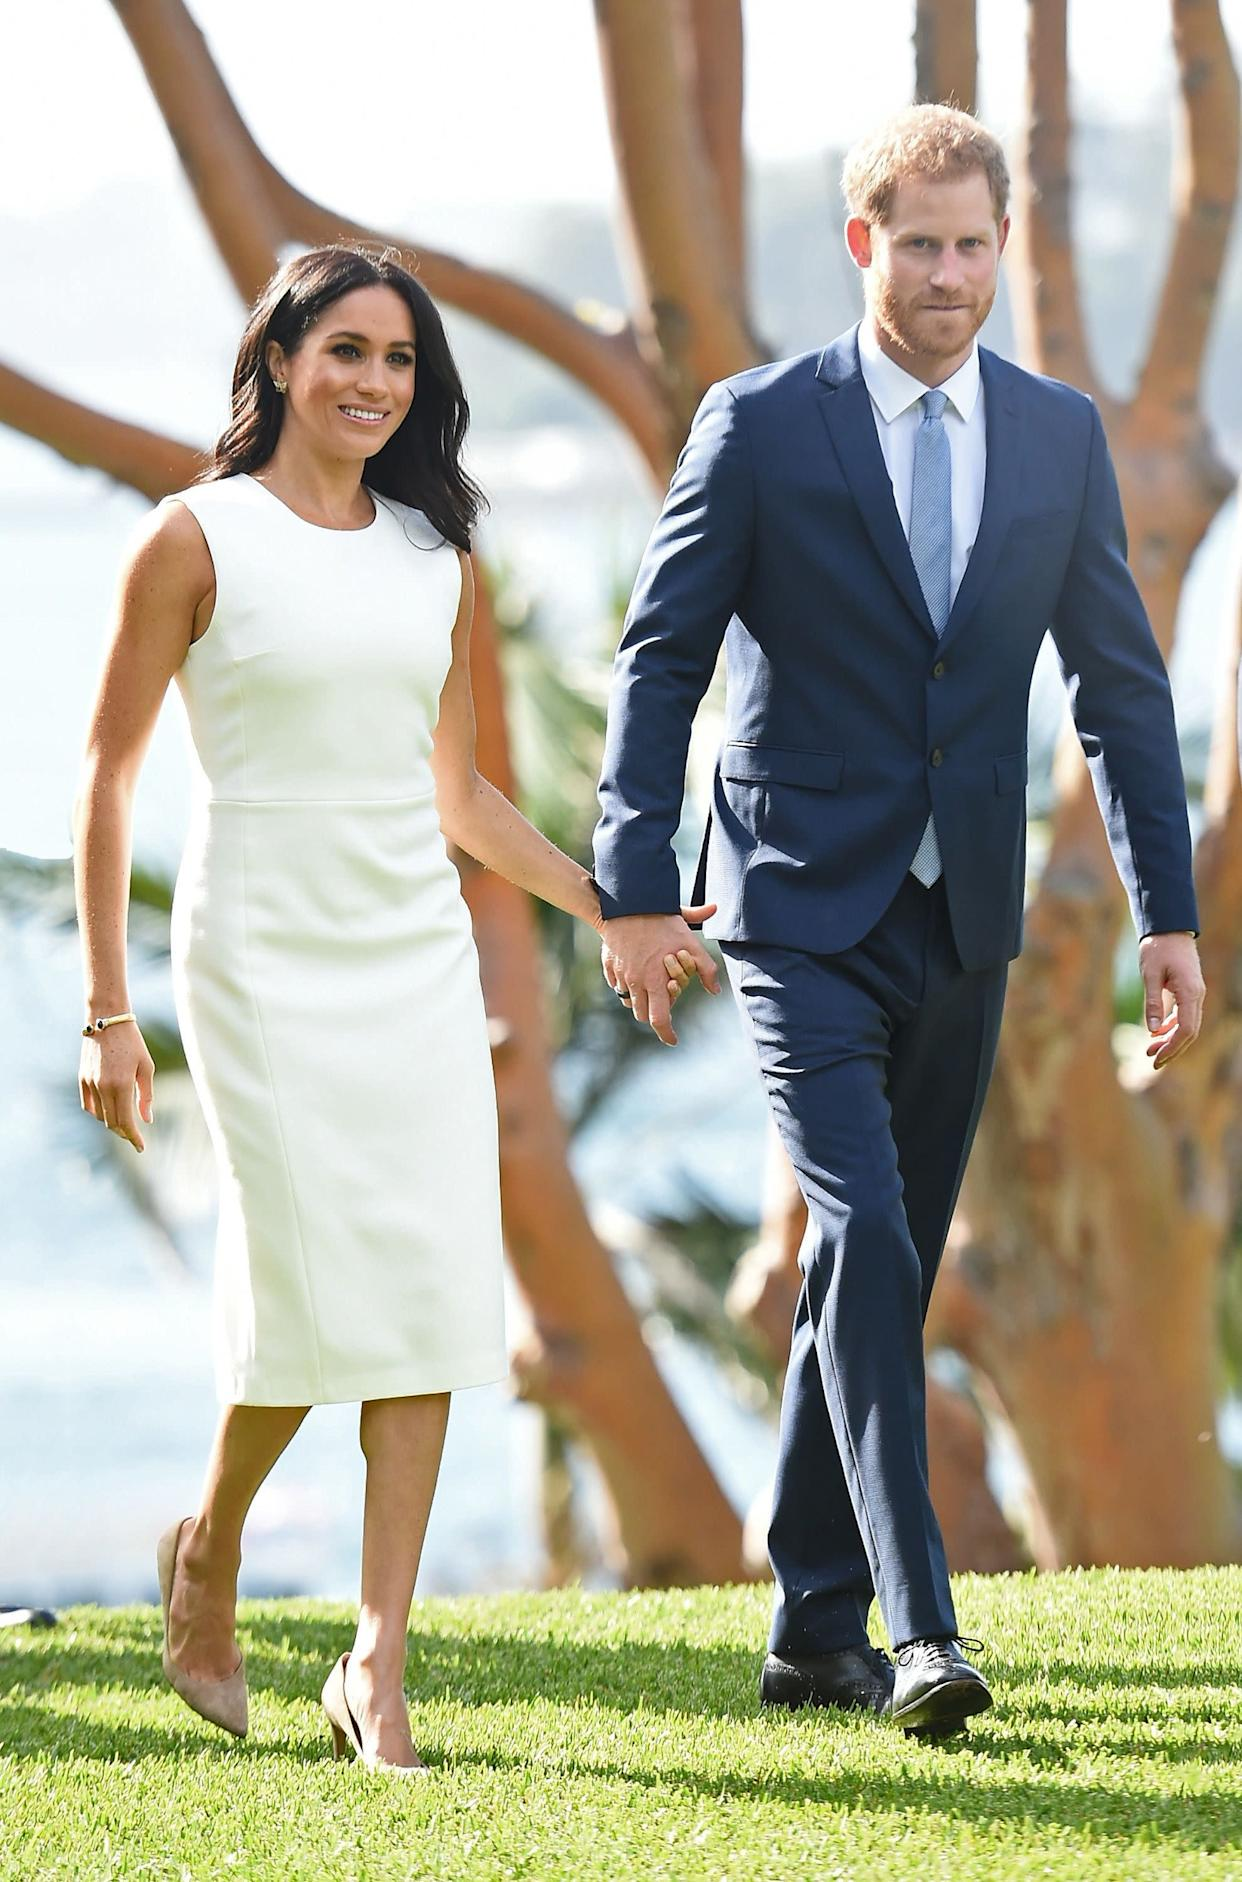 The duchess wears a white sheath dress by Karen Gee on Oct. 16, the first day of the royal tour.